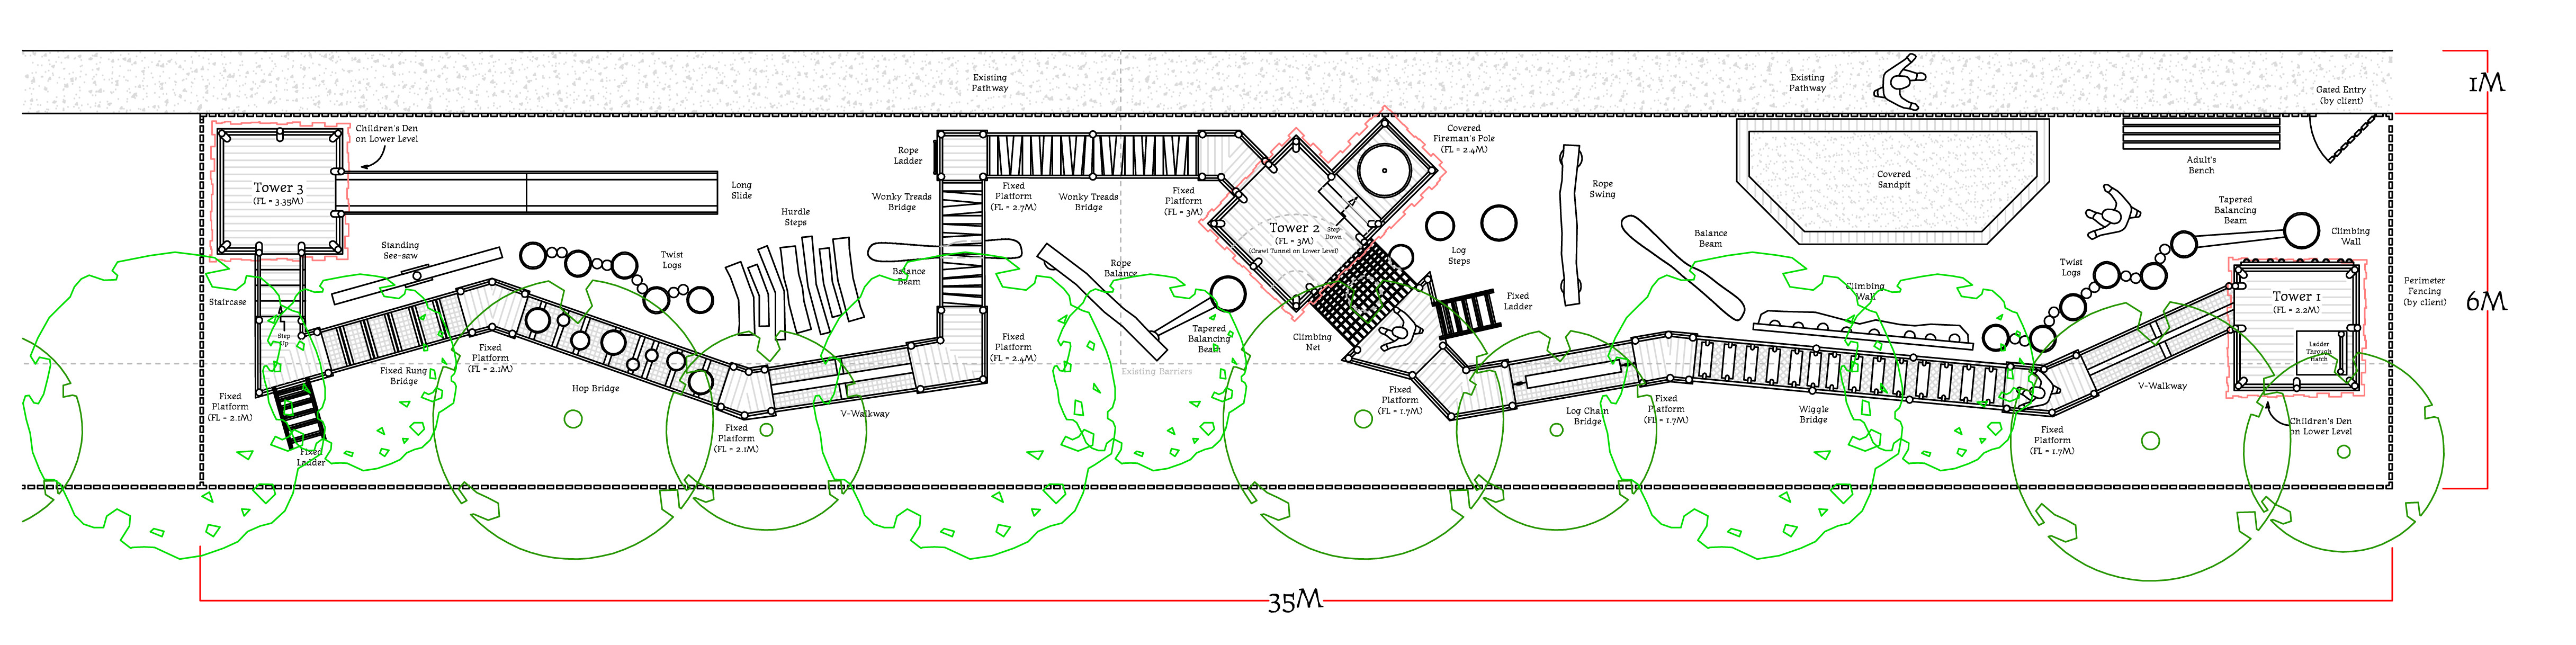 Bawdeswell Garden Centre adventure play site plan